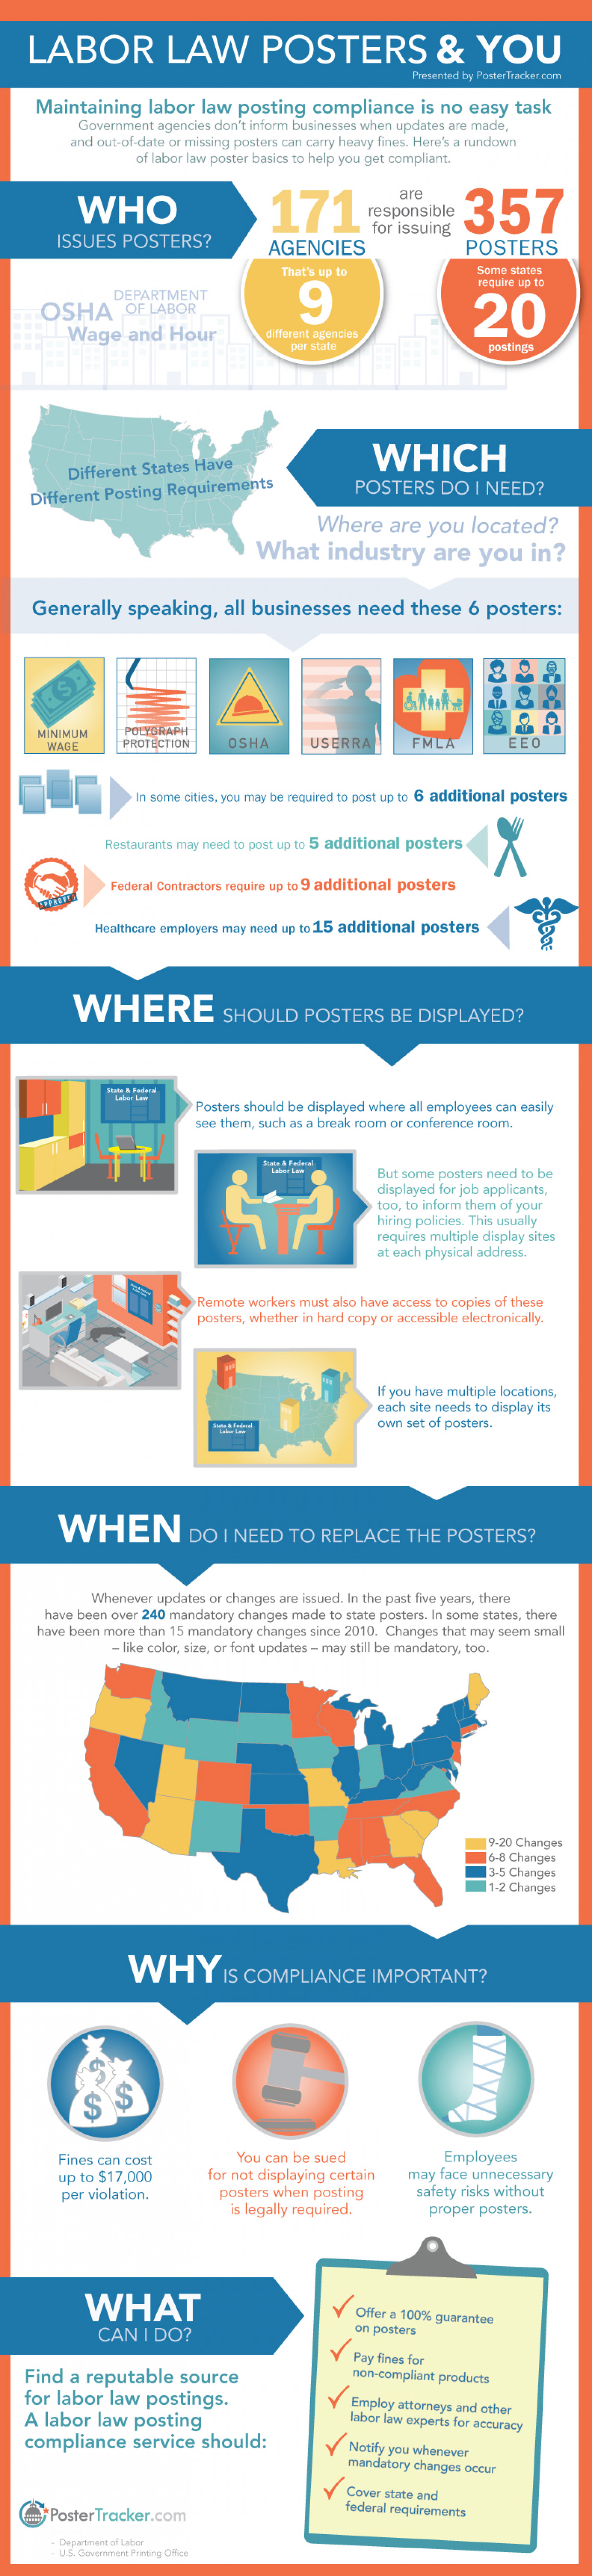 Labor Law Posters & You Infographic